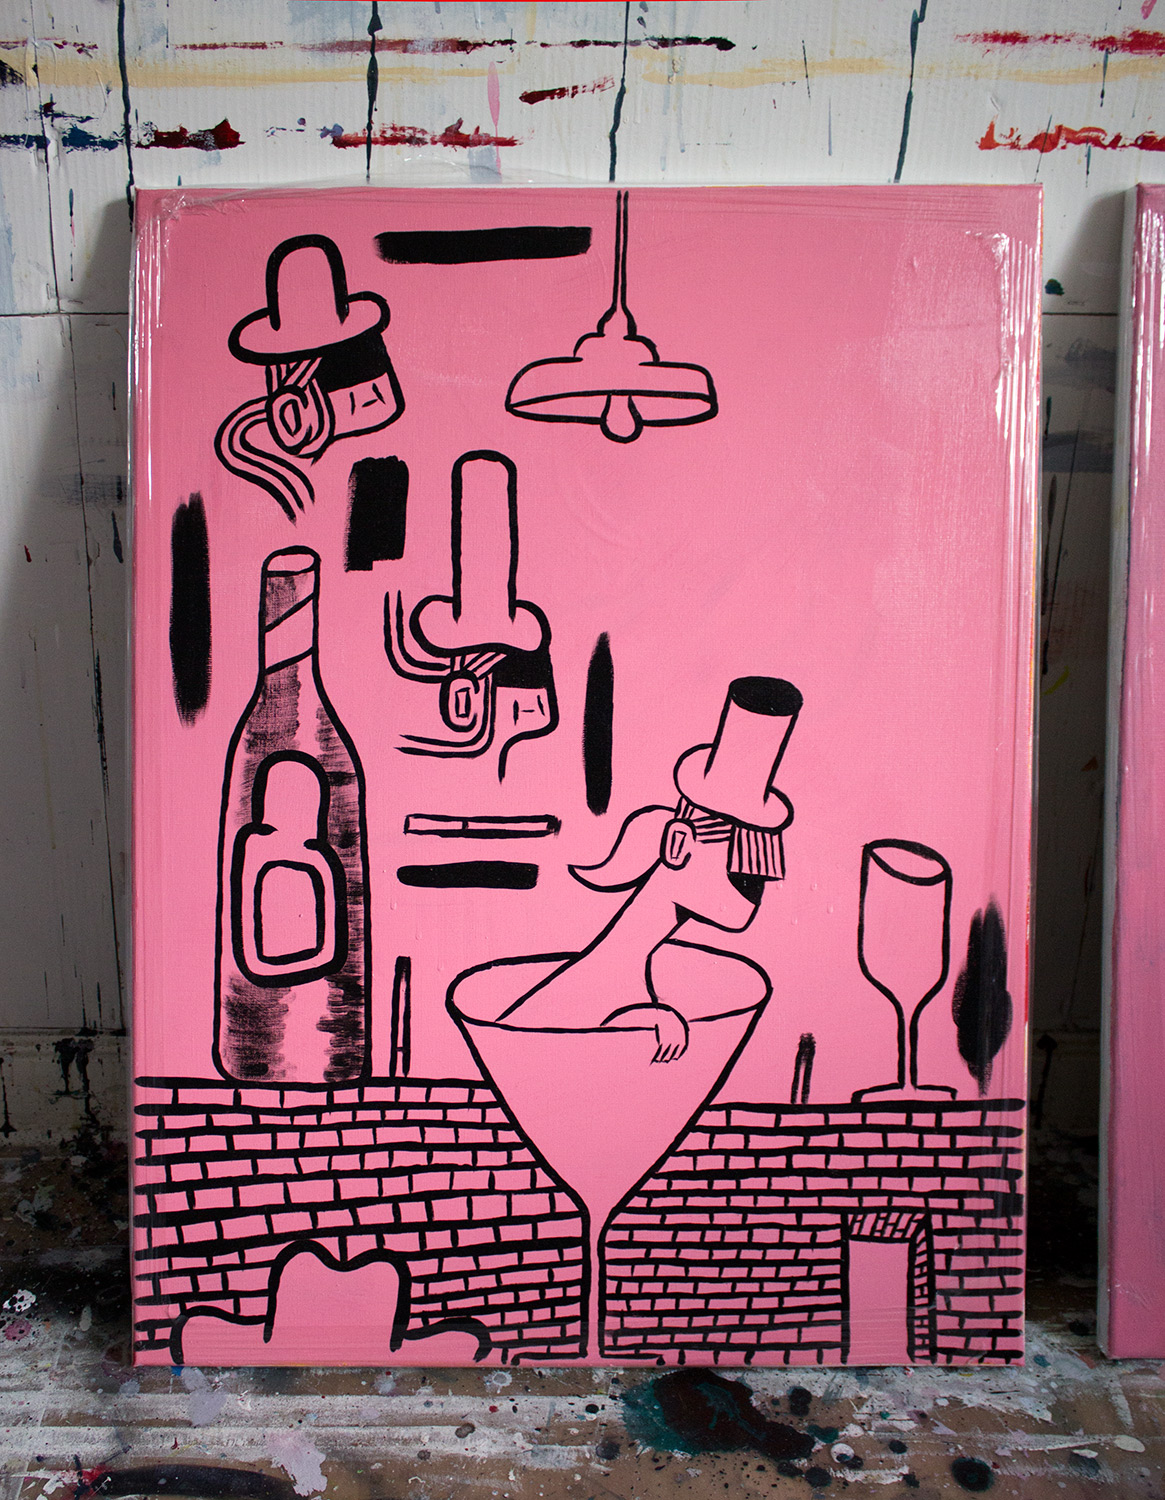 paintings, figurative, pop, portraiture, still-life, bodies, everyday life, humor, black, pink, acrylic, cotton-canvas, amusing, contemporary-art, danish, decorative, design, food, interior, interior-design, love, modern, modern-art, nordic, scandinavien, street-art, Buy original high quality art. Paintings, drawings, limited edition prints & posters by talented artists.